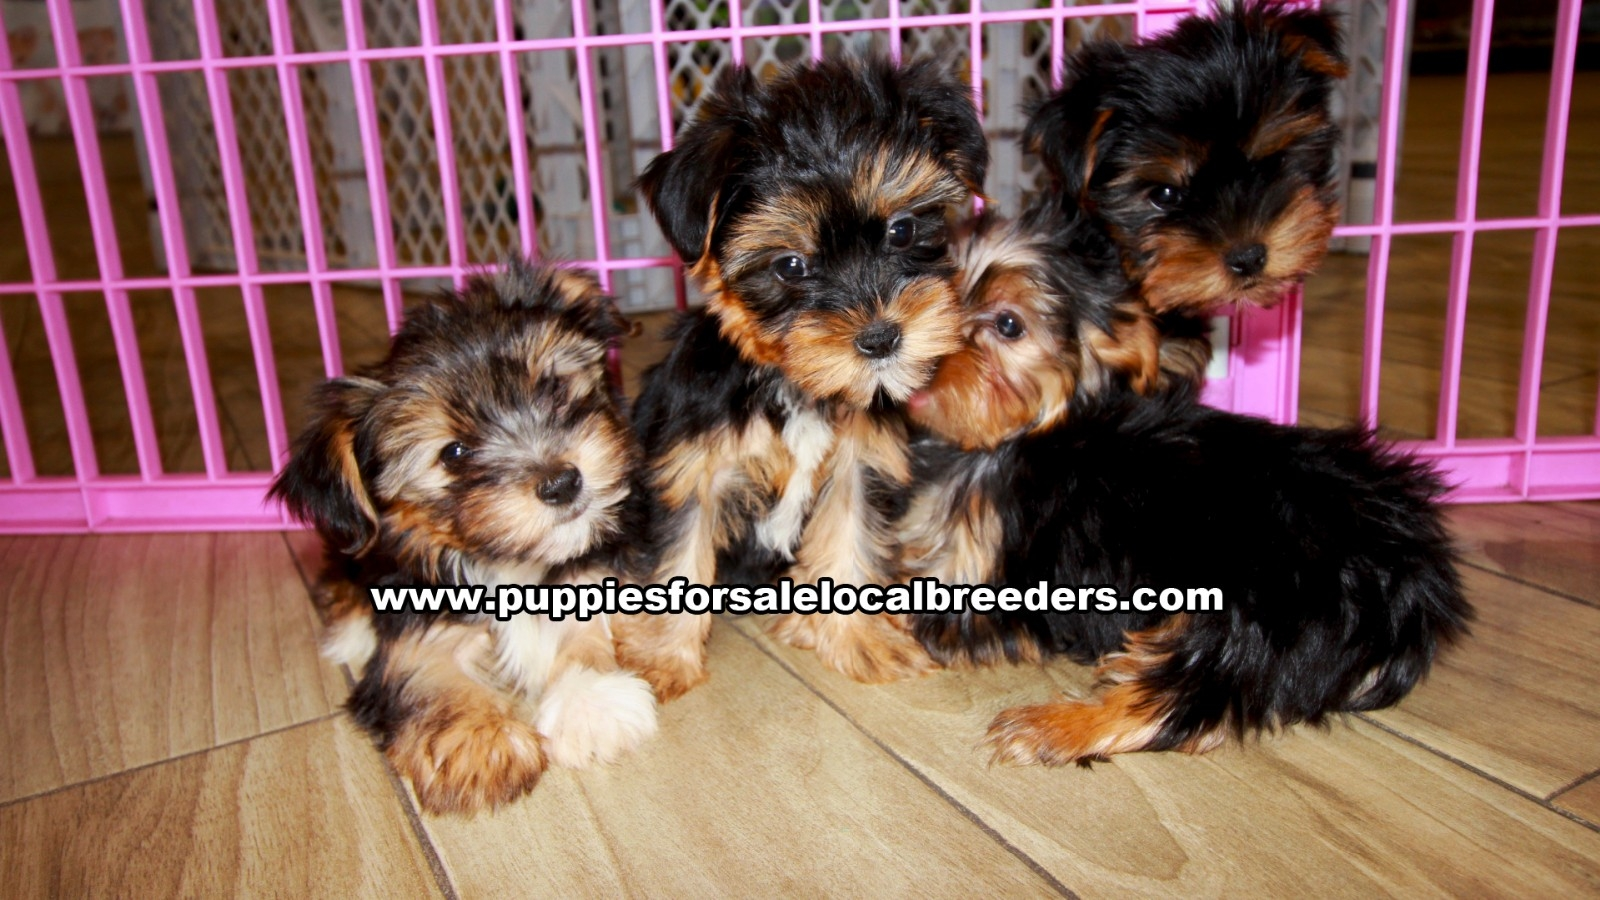 Yorkie, Puppies For Sale In Georgia, Local Breeders, Near Atlanta, Ga